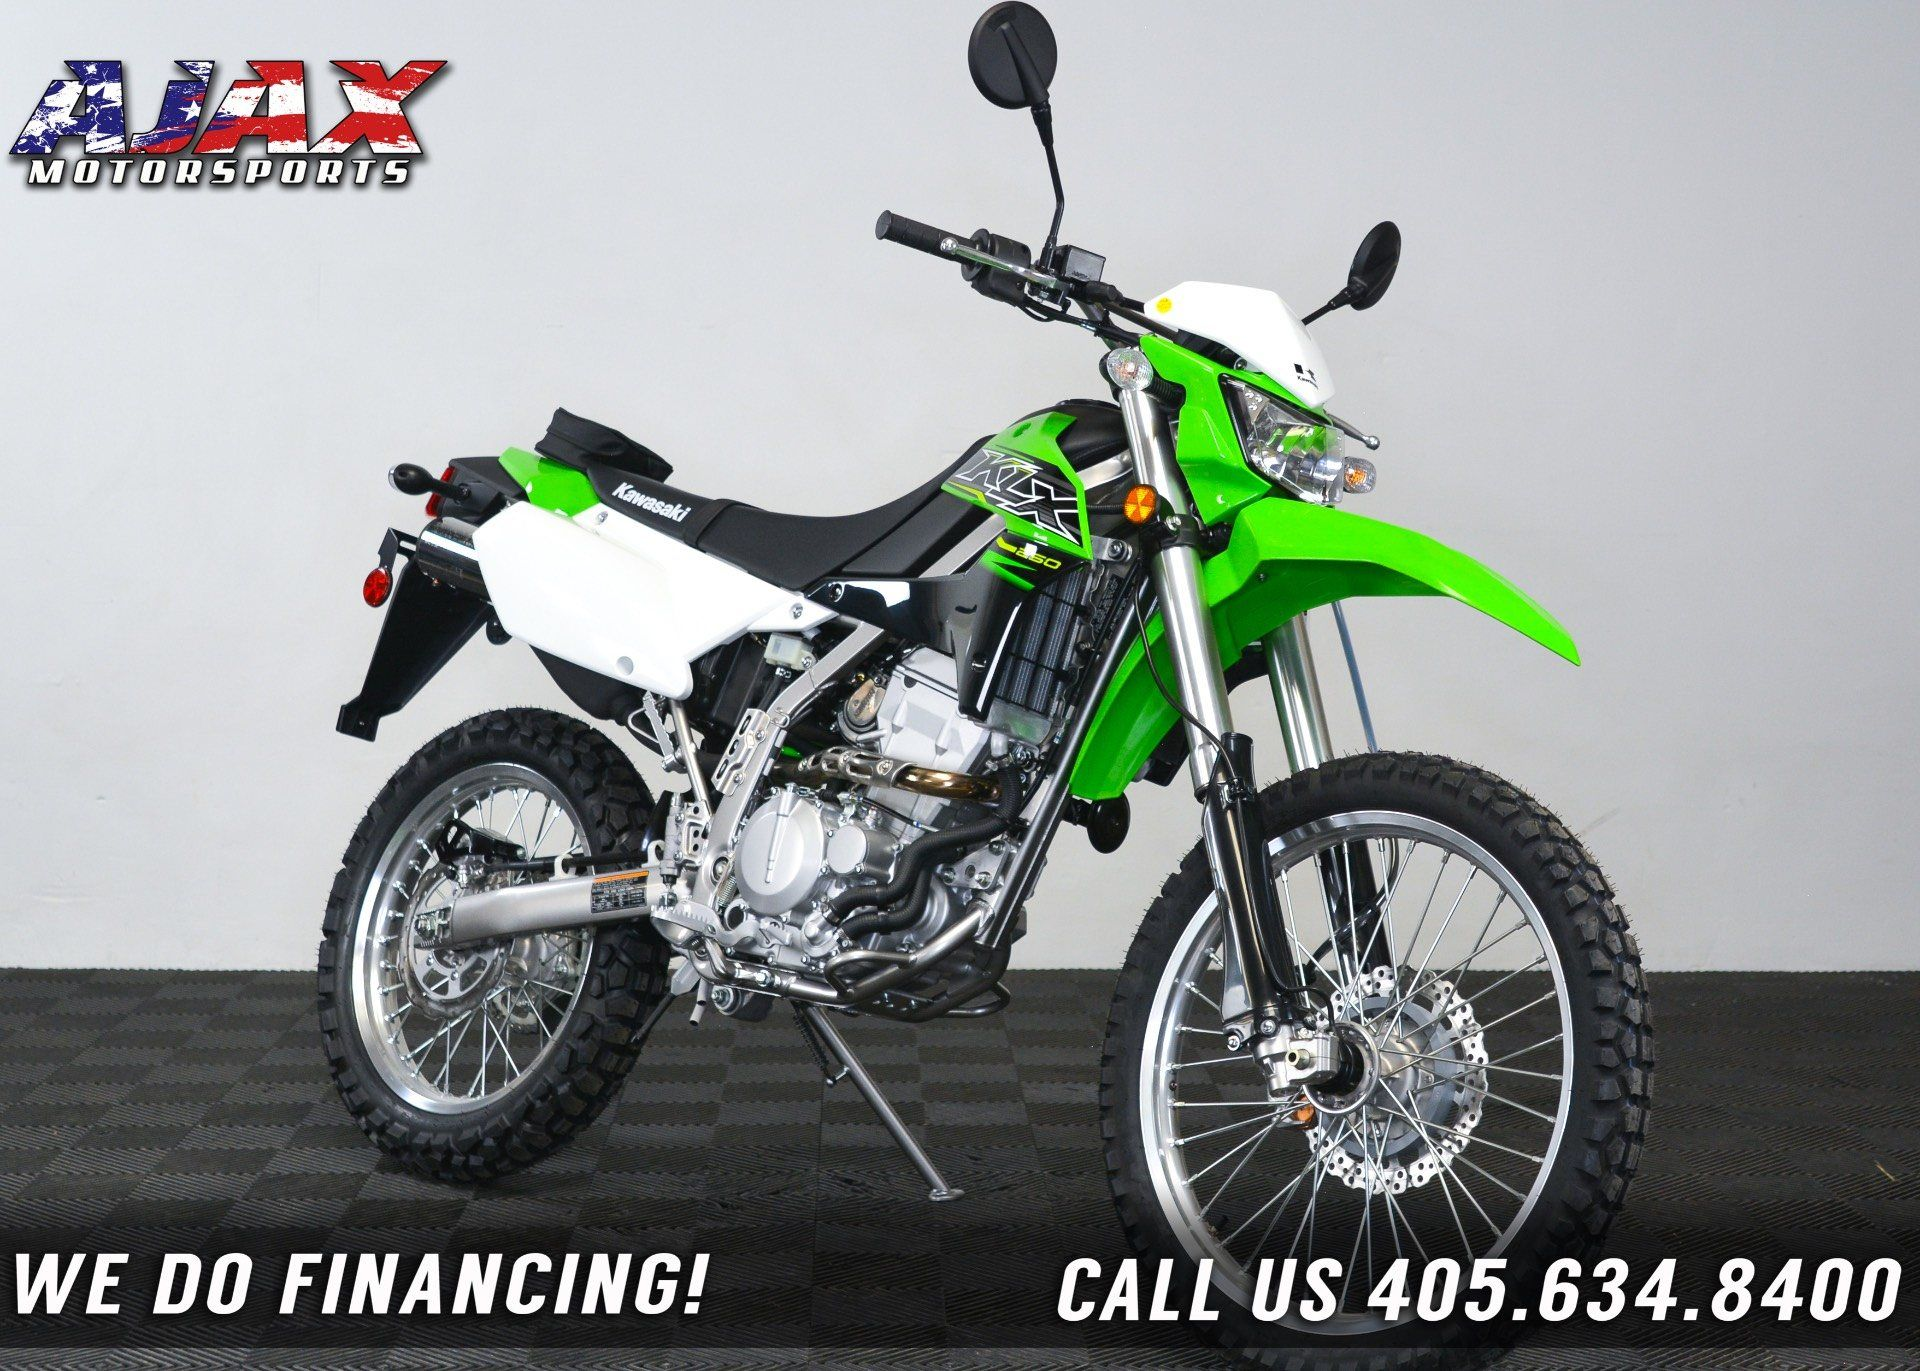 2019 Kawasaki KLX 250 in Oklahoma City, Oklahoma - Photo 1